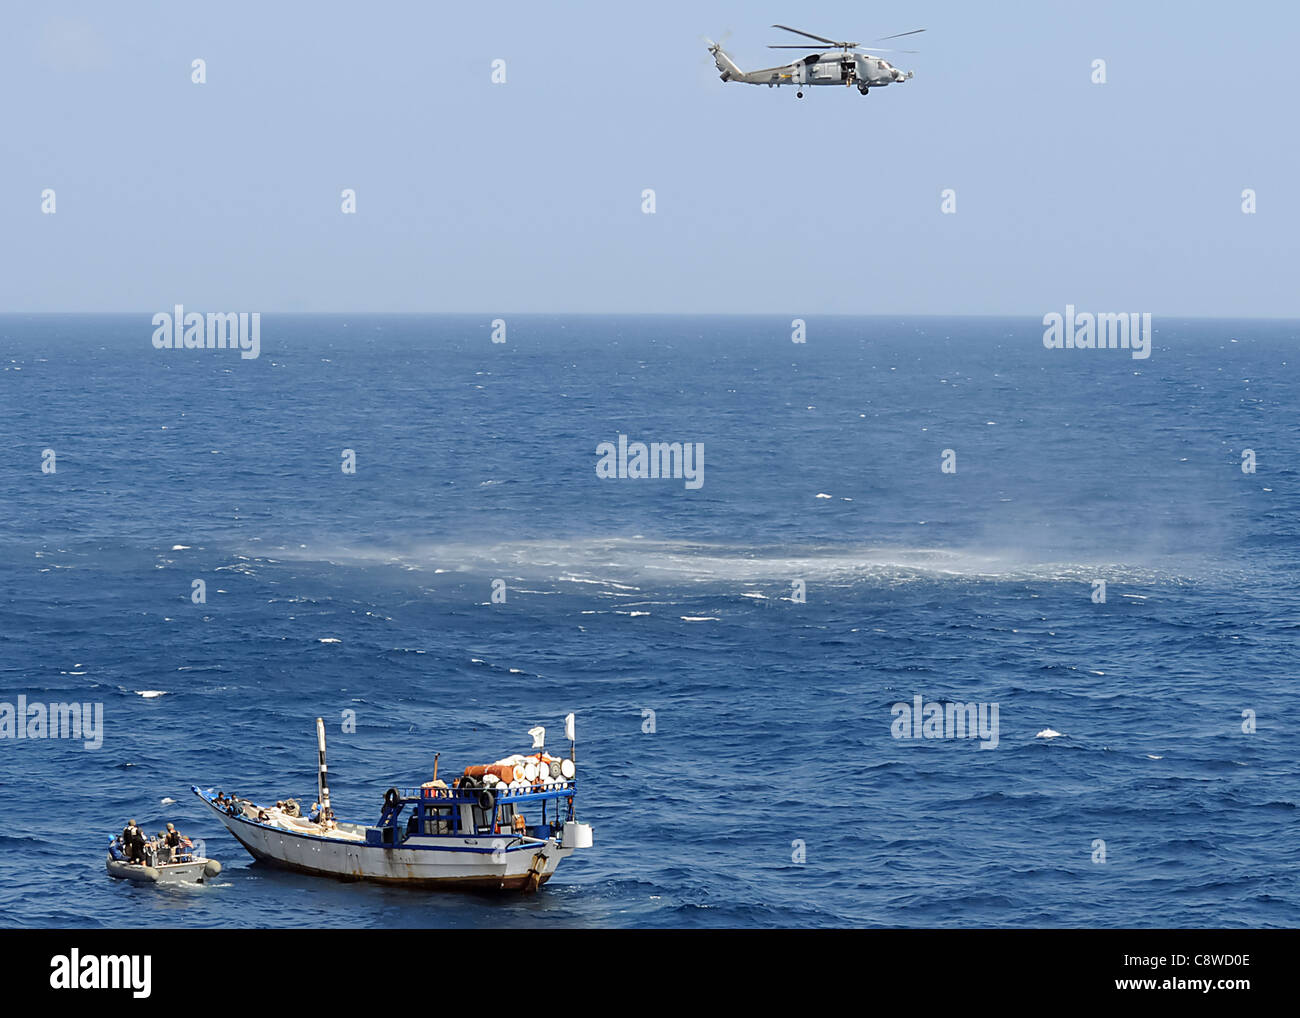 Vella Gulf (CG 72) use a rigid-hulled inflatable boat to approach a dhow needing assistance. - Stock Image